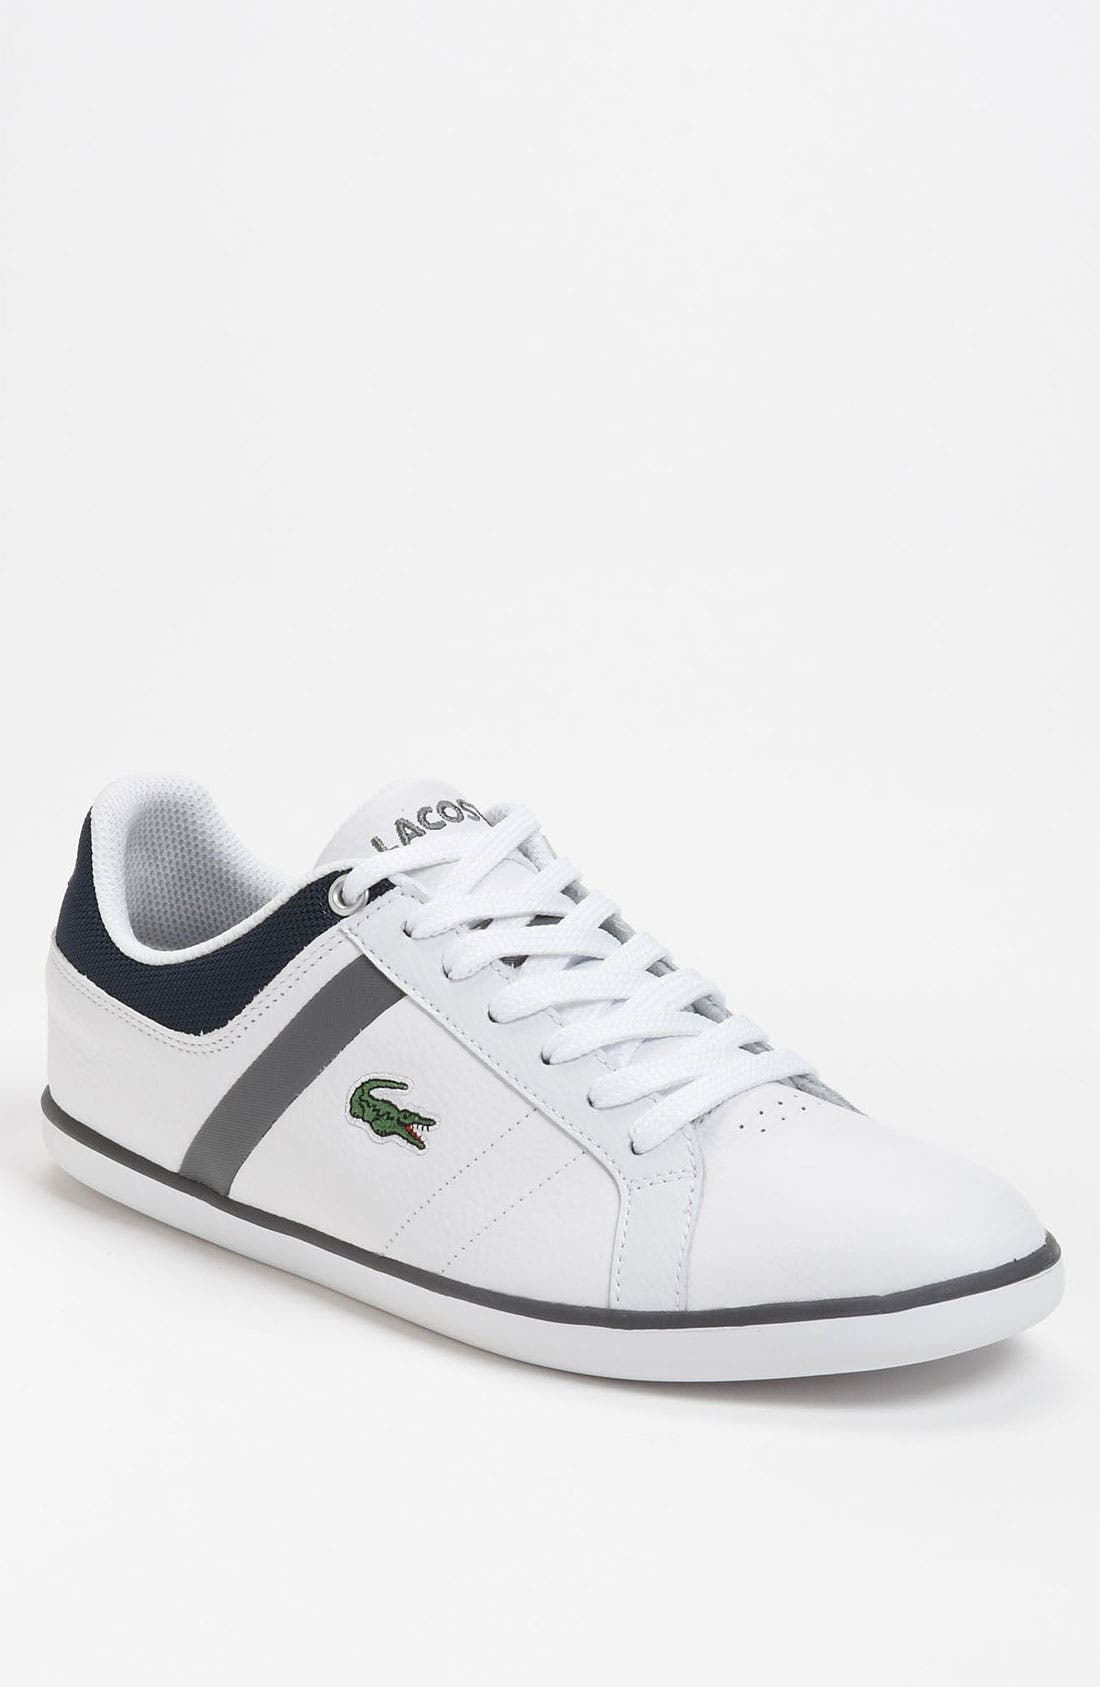 Main Image - Lacoste 'Evershot PS' Sneaker